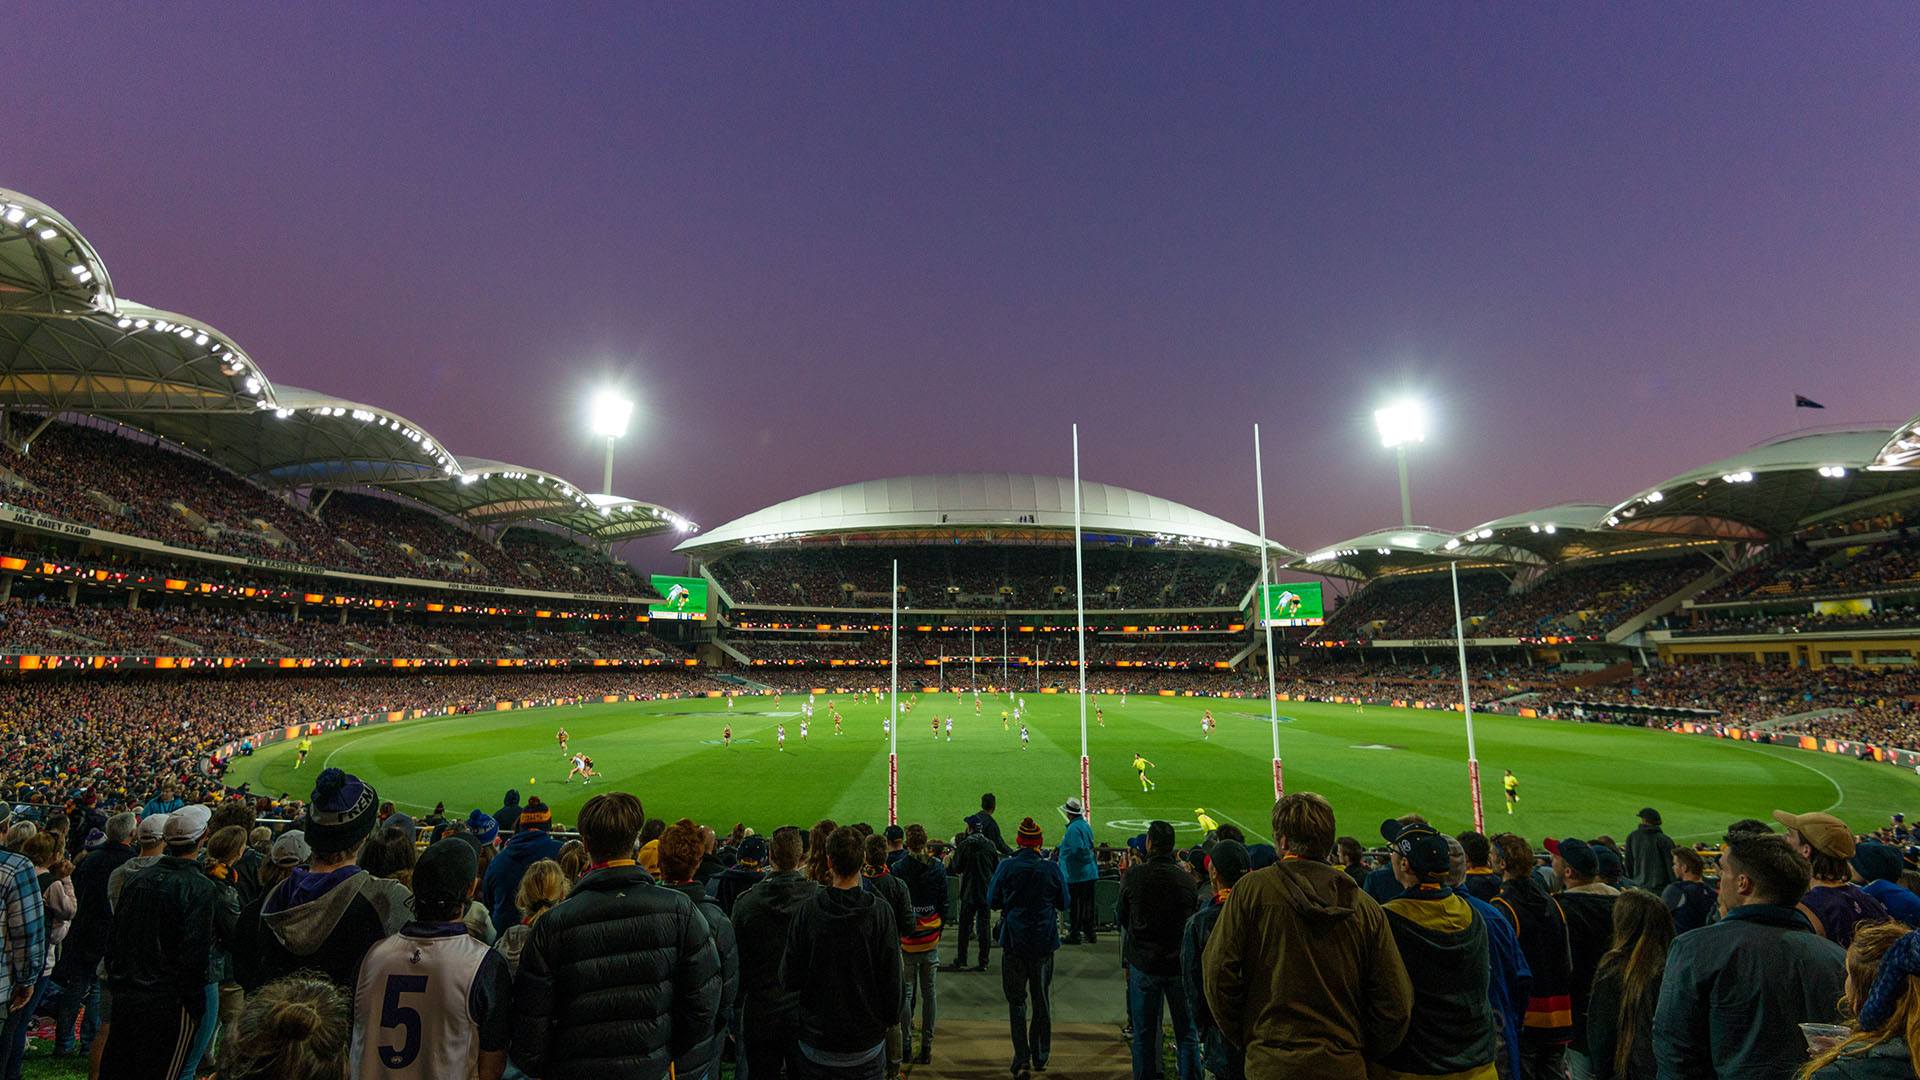 Adelaide Oval set to welcome 10 MILLIONTH patron